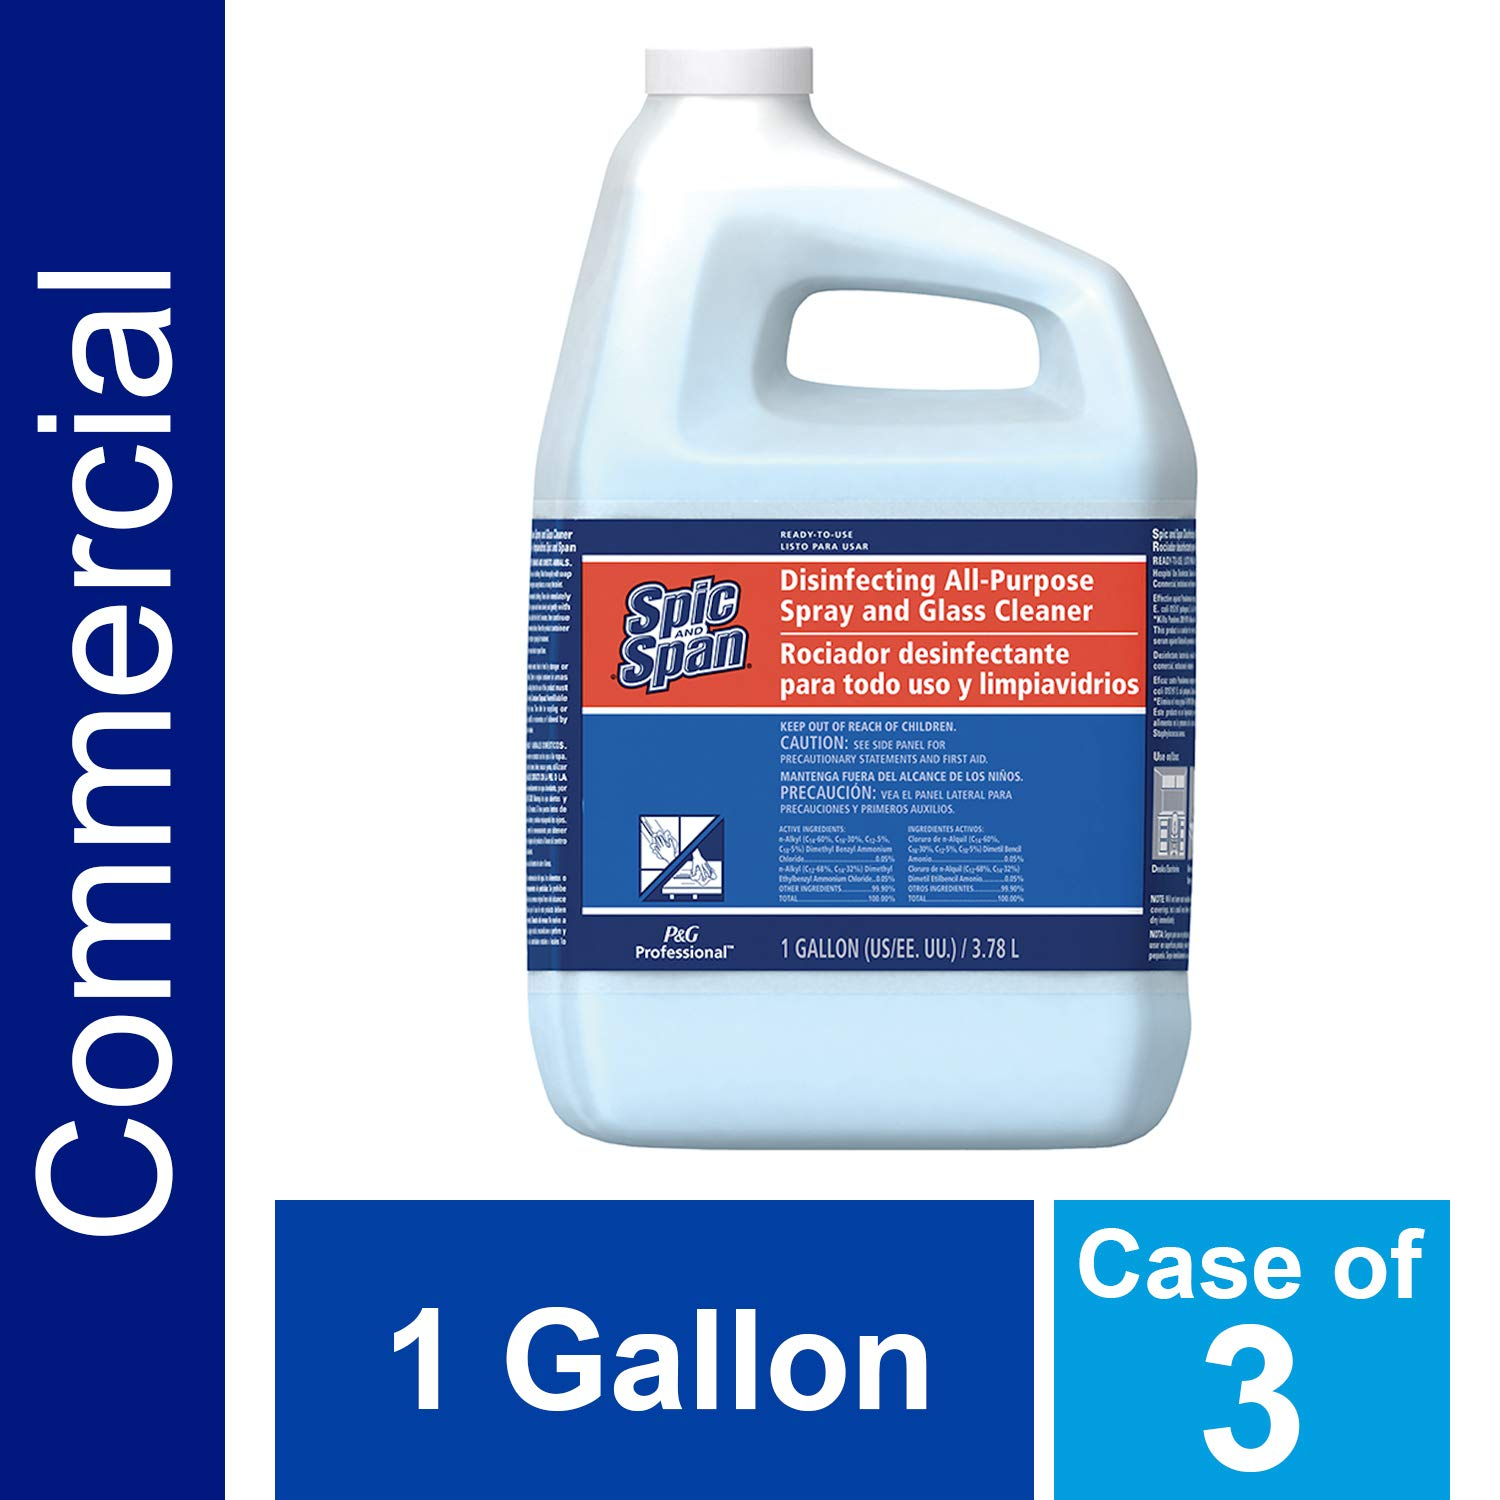 Disinfecting Surface and Glass Cleaner from Spic and Span Professional, Bulk 3-in-1 Multi-Purpose Cleaner, 15x Concentrate, Fresh Scent, All Purpose Commercial Use, 1 Gal. (Case of 3)